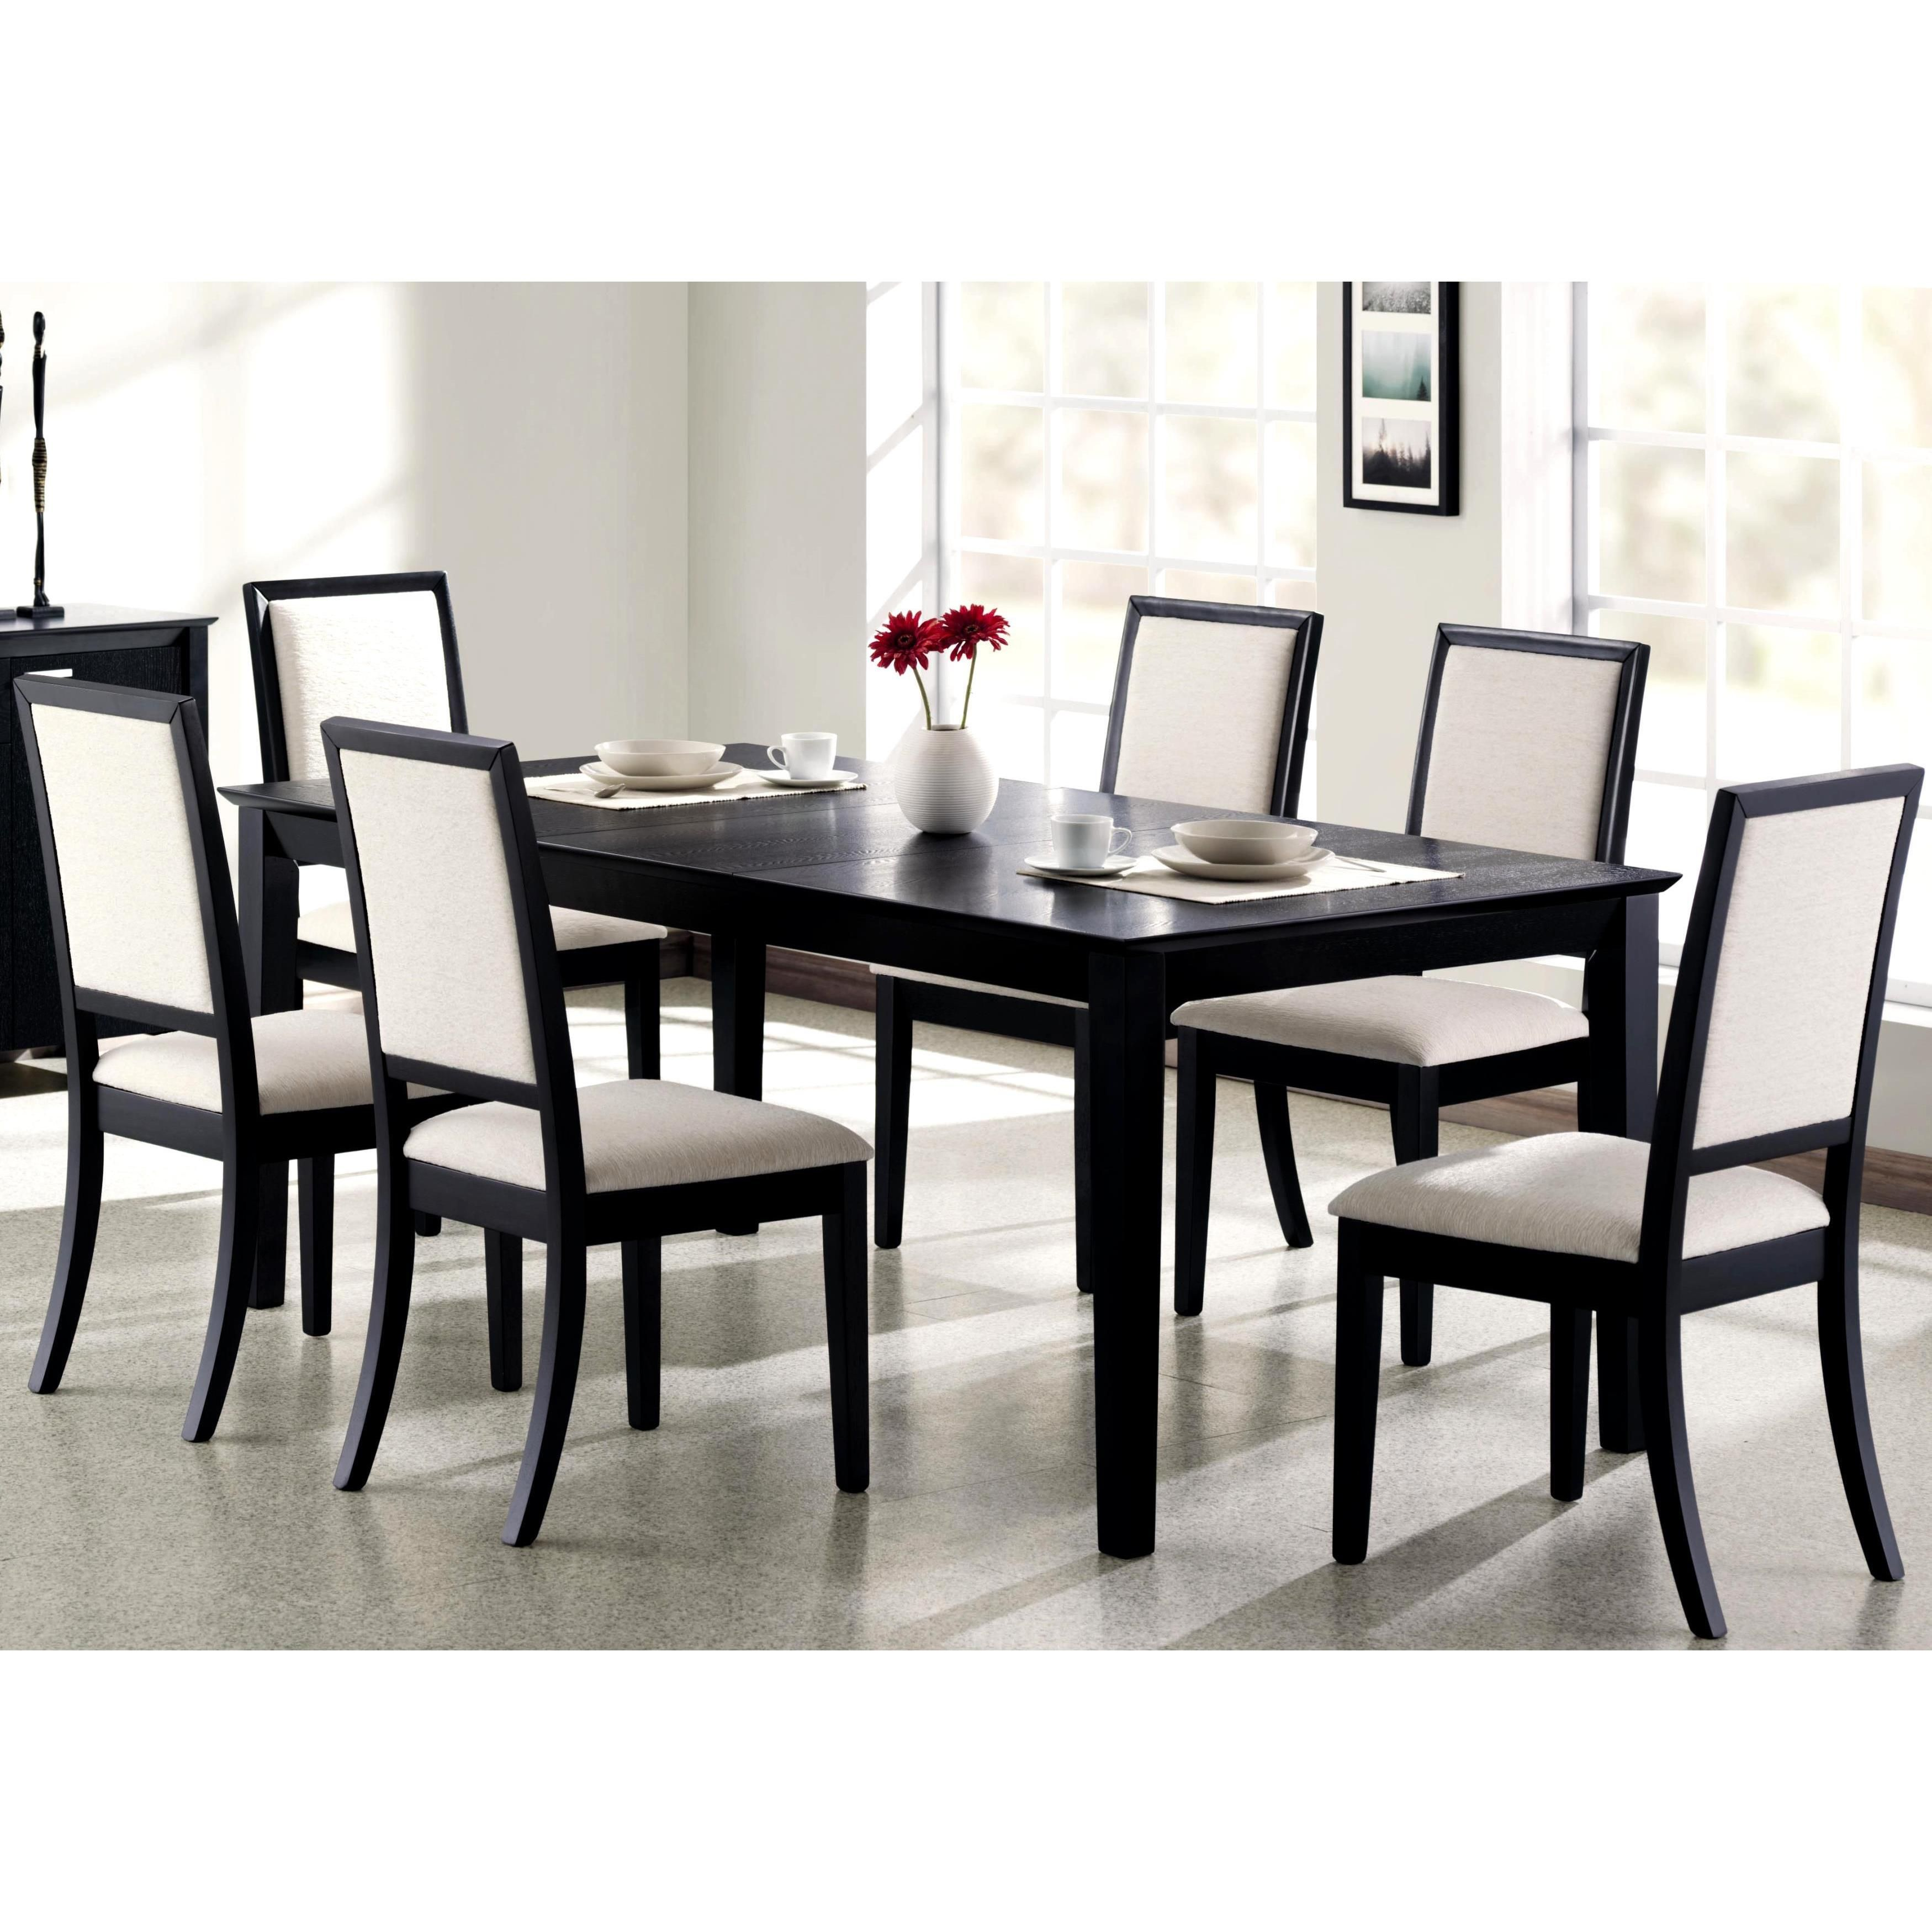 prestige cream ivory white upholstered black wood dining set rh pinterest co uk